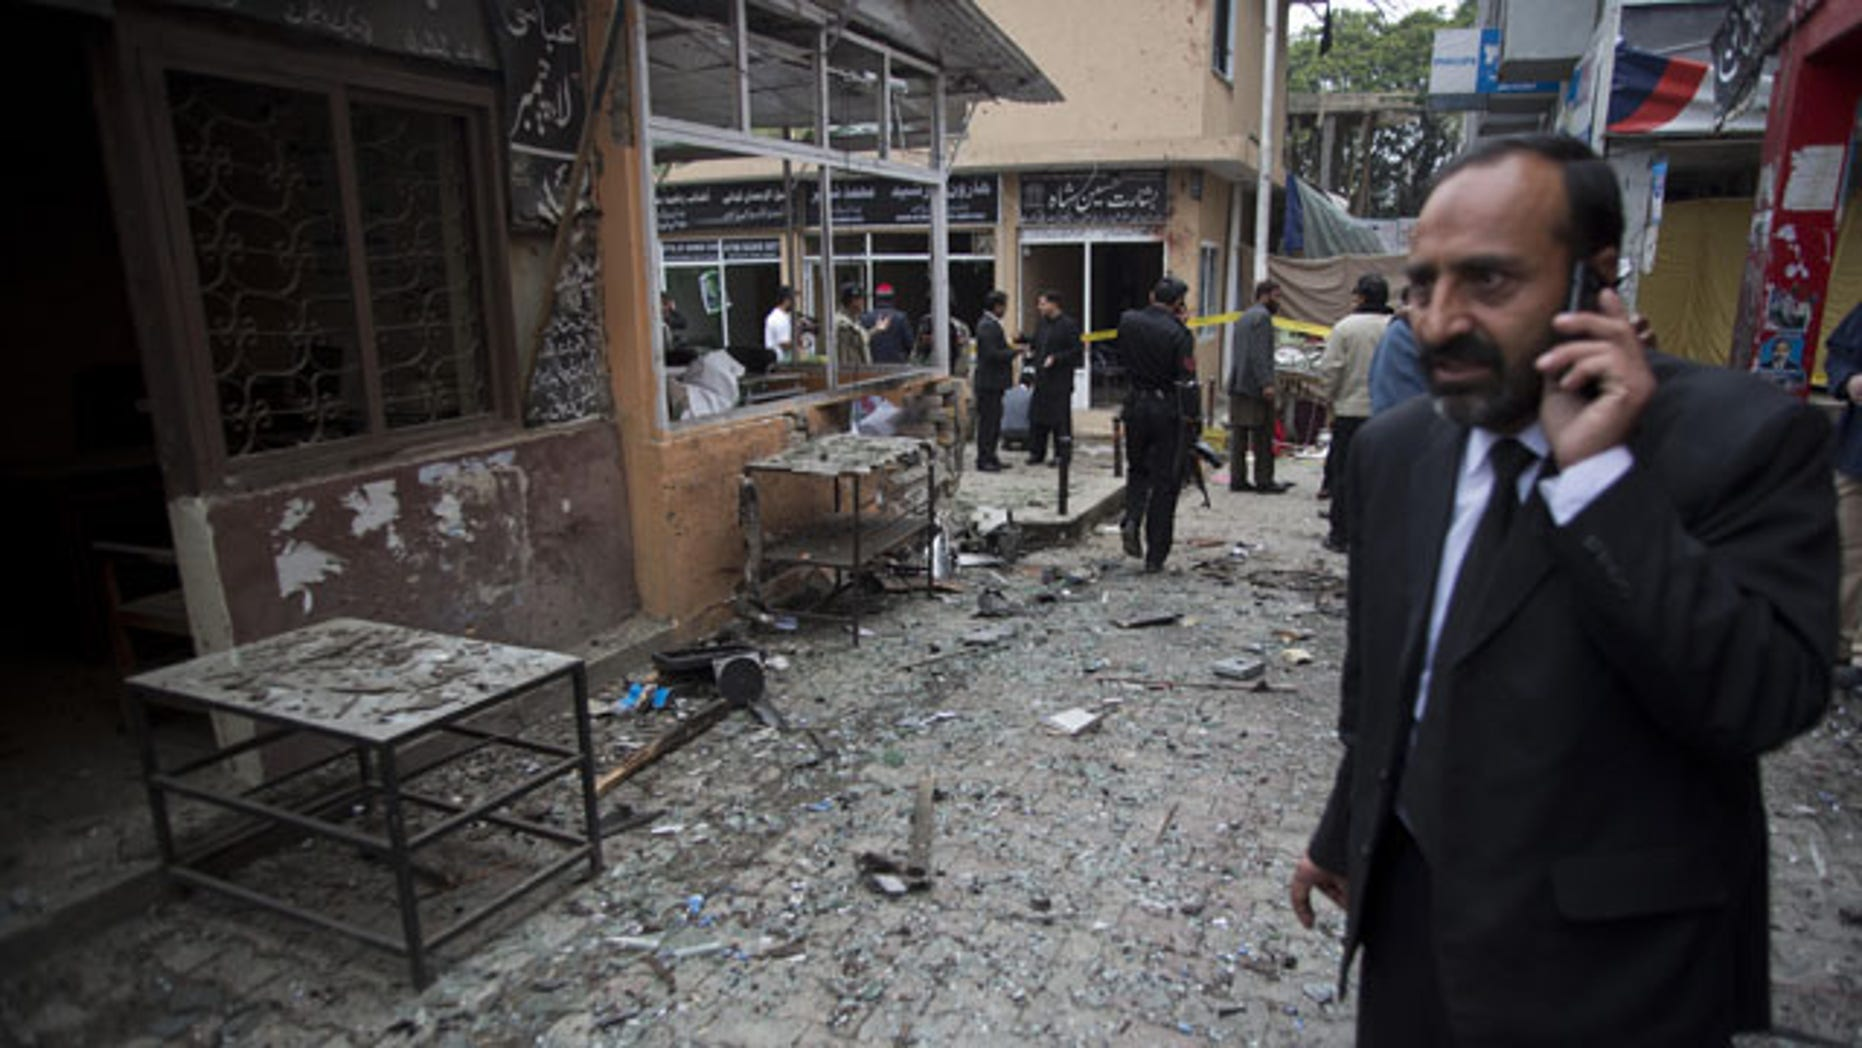 March 3, 2014: A Pakistani lawyer talks on his mobile phone at the site of a suicide attack in a court complex in Islamabad, Pakistan. Two suicide bombers blew themselves up at the complex on Monday, killing 11 people and wounding dozens in a rare terror attack in the heart of Islamabad, officials said. (AP Photo/B.K. Bangash)